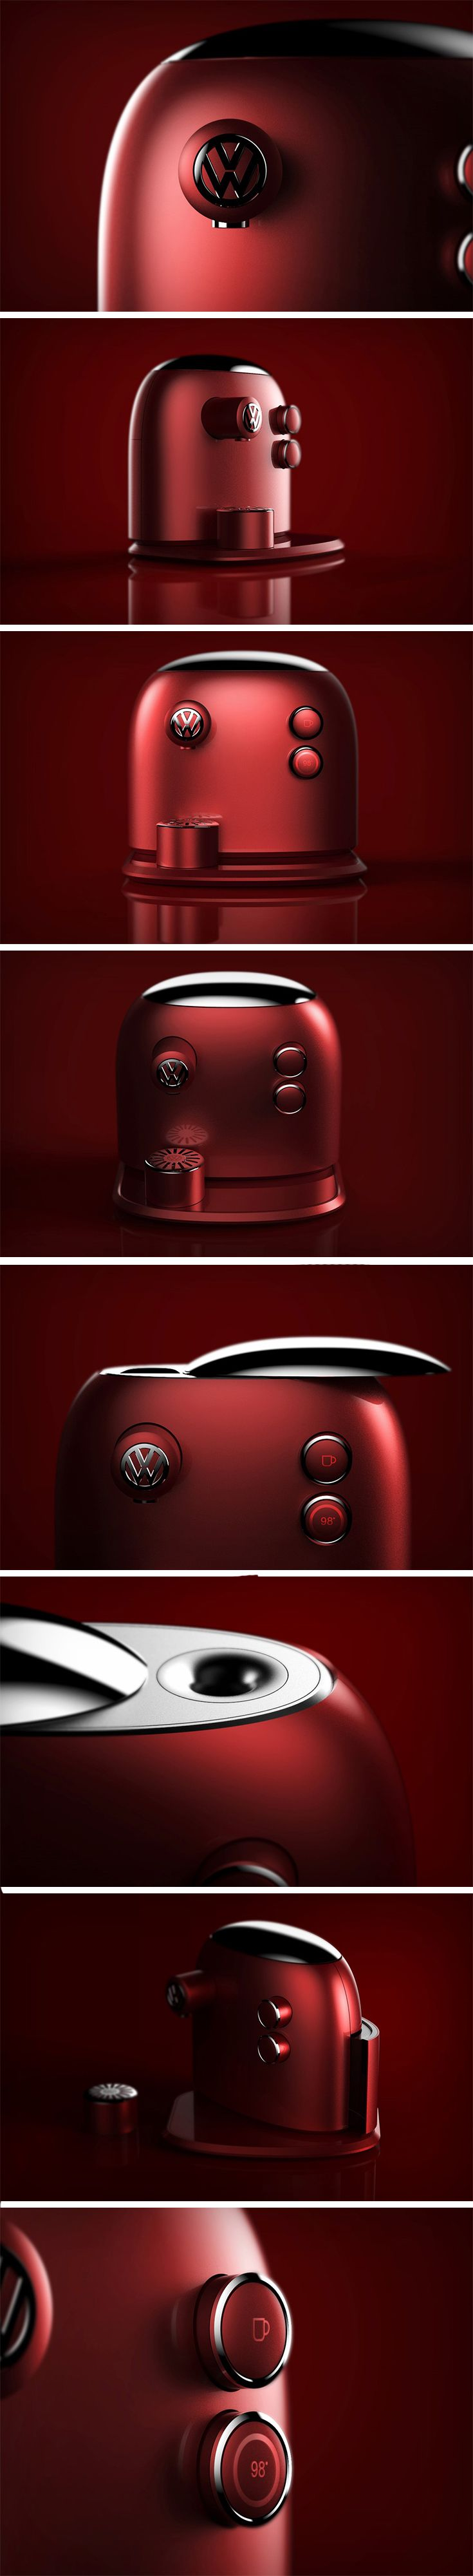 "'Barista Beetle' – a Volkswagen inspired coffee machine designed by Jarim Koo. Klaus Bischoff – Volkswagen's Head of Design – describes the brand's design philosophy in 3 words: ""Simple, sophisticated, and different."" Koo has undoubtedly adopted this philosophy across the Barista Beetle. Koo has embodied the brand's unique image and identity here that is synonymous with the VW Beetle."